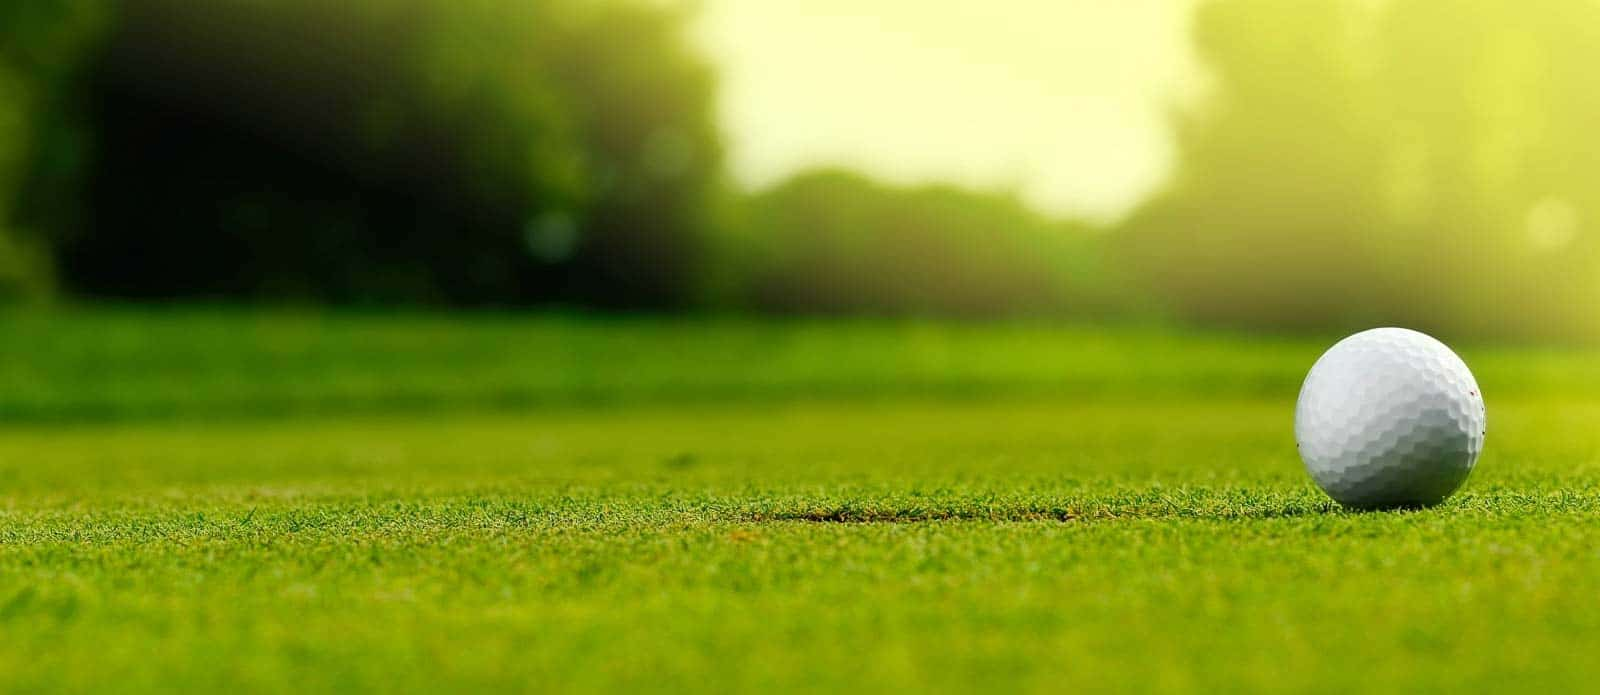 canterbury-green-golf-course-hole-background - Gold Oller ...